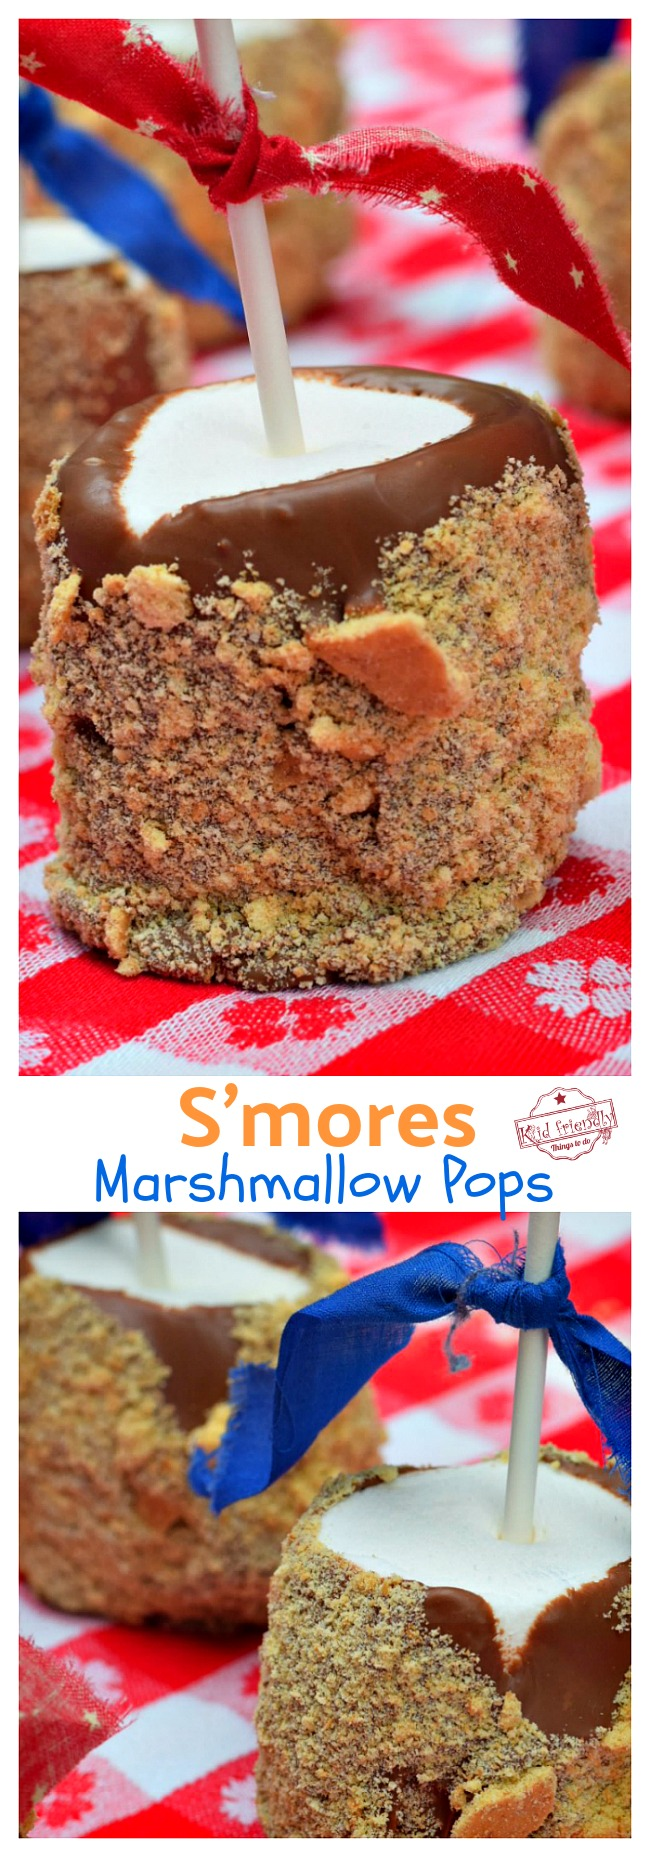 S'more Marshmallow Pops on table